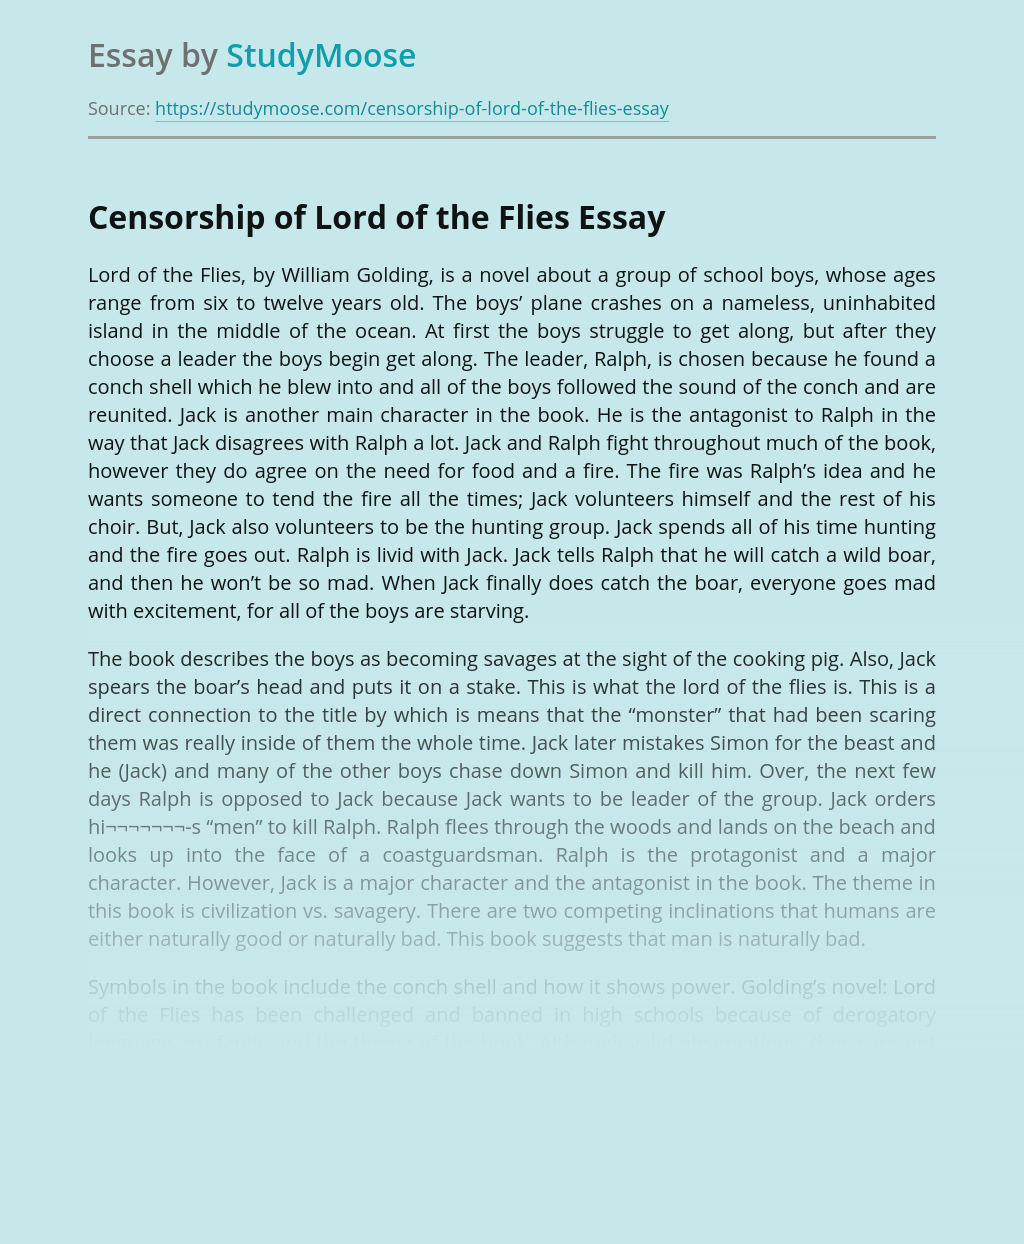 Censorship of Lord of the Flies